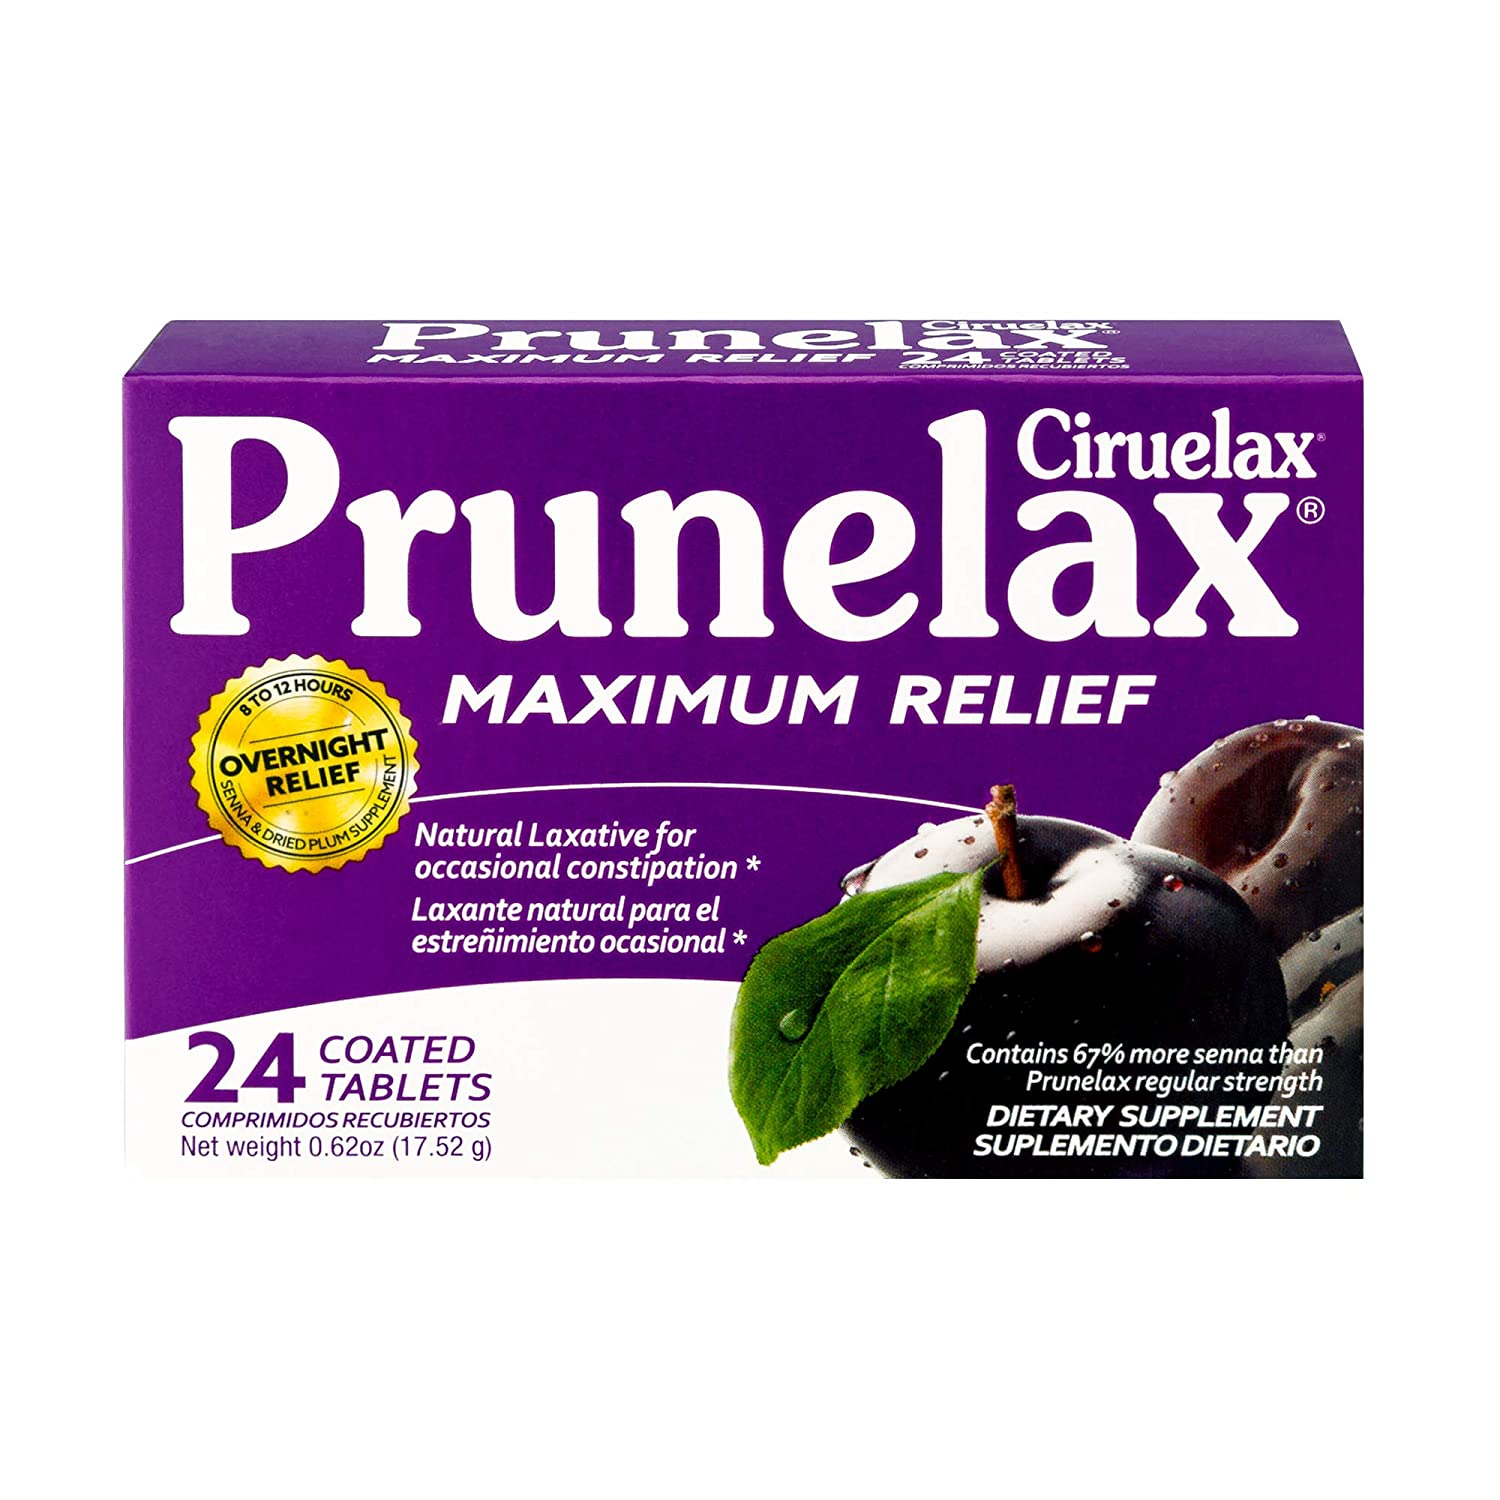 Amazon.com: Prunelax Ciruelax Natural Laxative Maximum Relief Tablets, 24 Count: Health & Personal Care